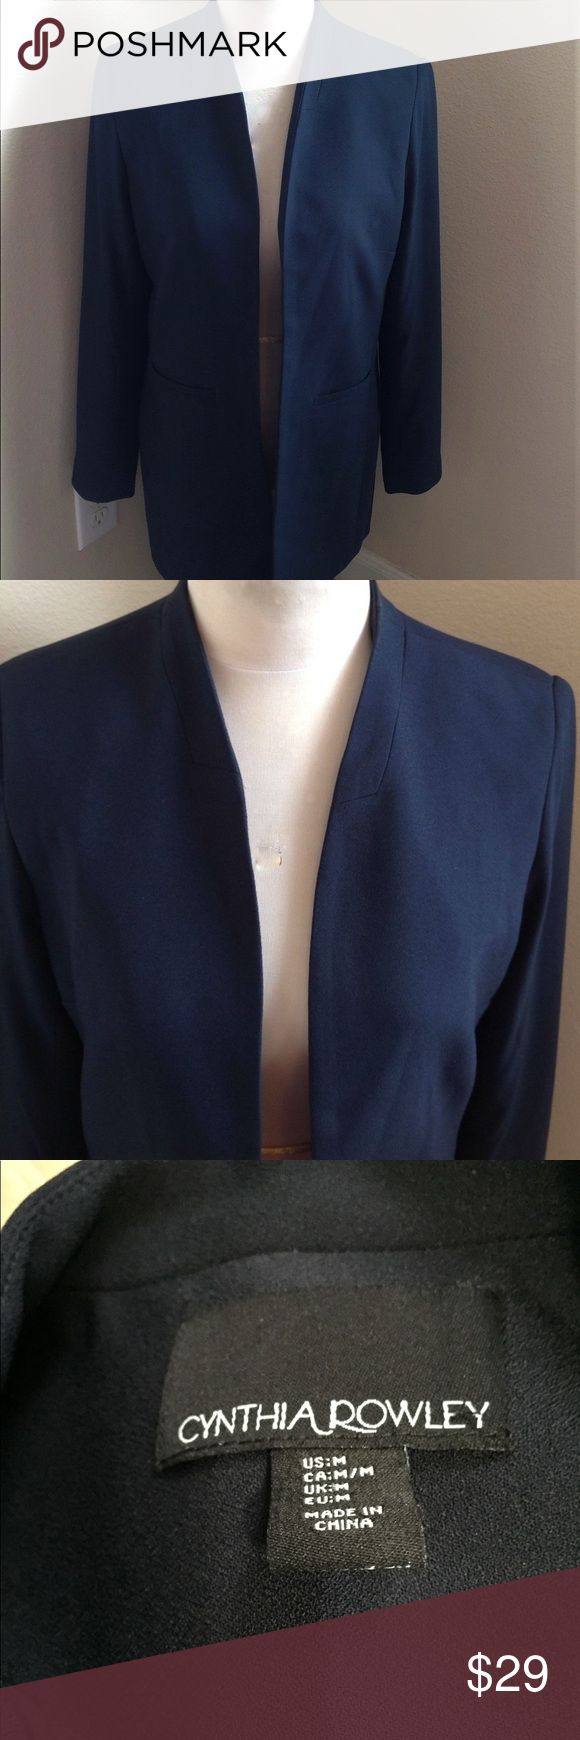 Cynthia Rowley Navy Collarless Blazer Super long, fully lined, collarless blazer; Polyester/Spandex. Cynthia Rowley Jackets & Coats Blazers